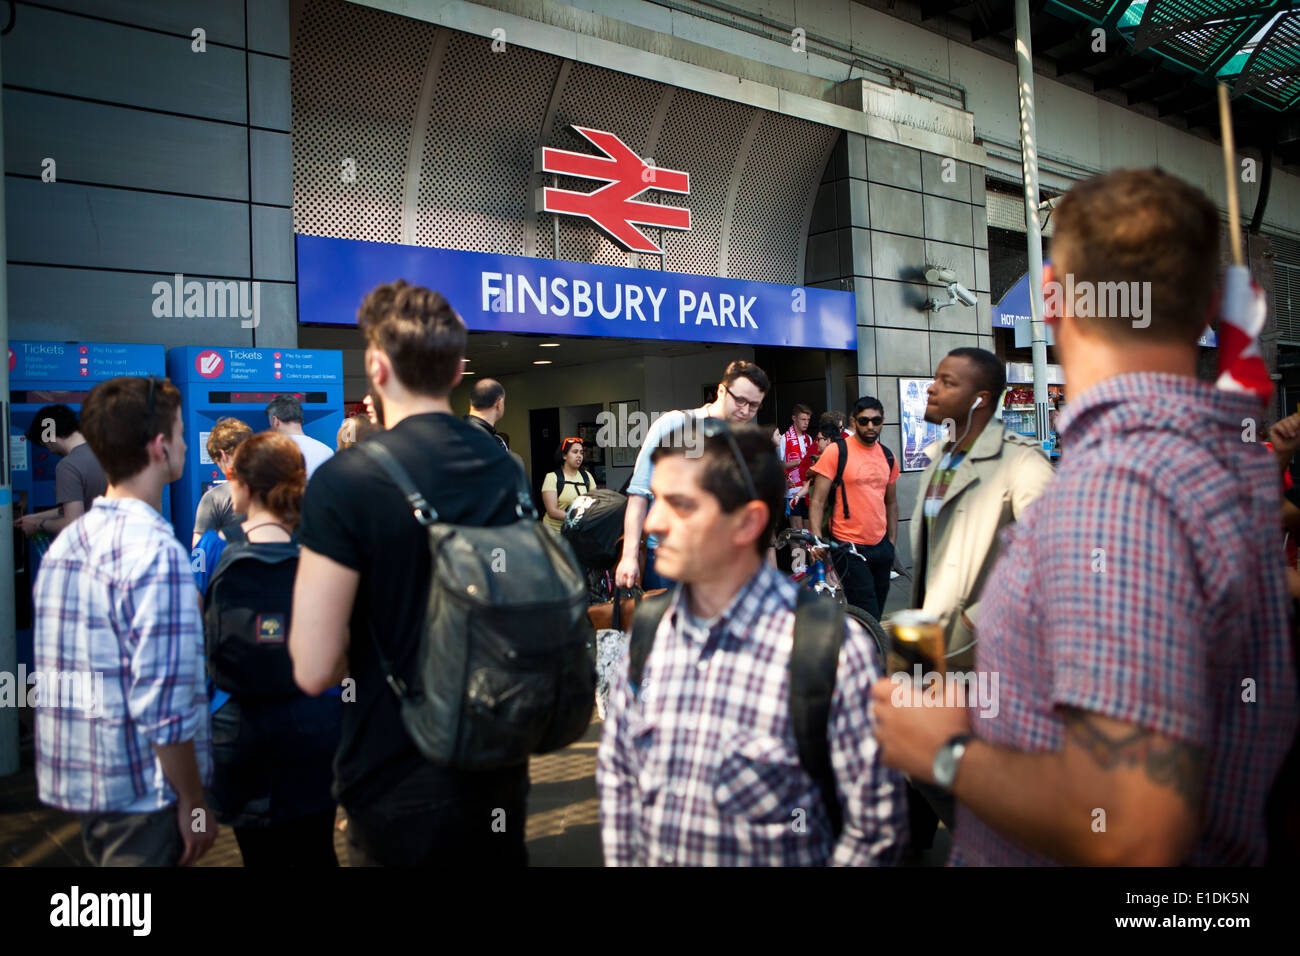 Entrance to Finsbury Park Station - Stock Image